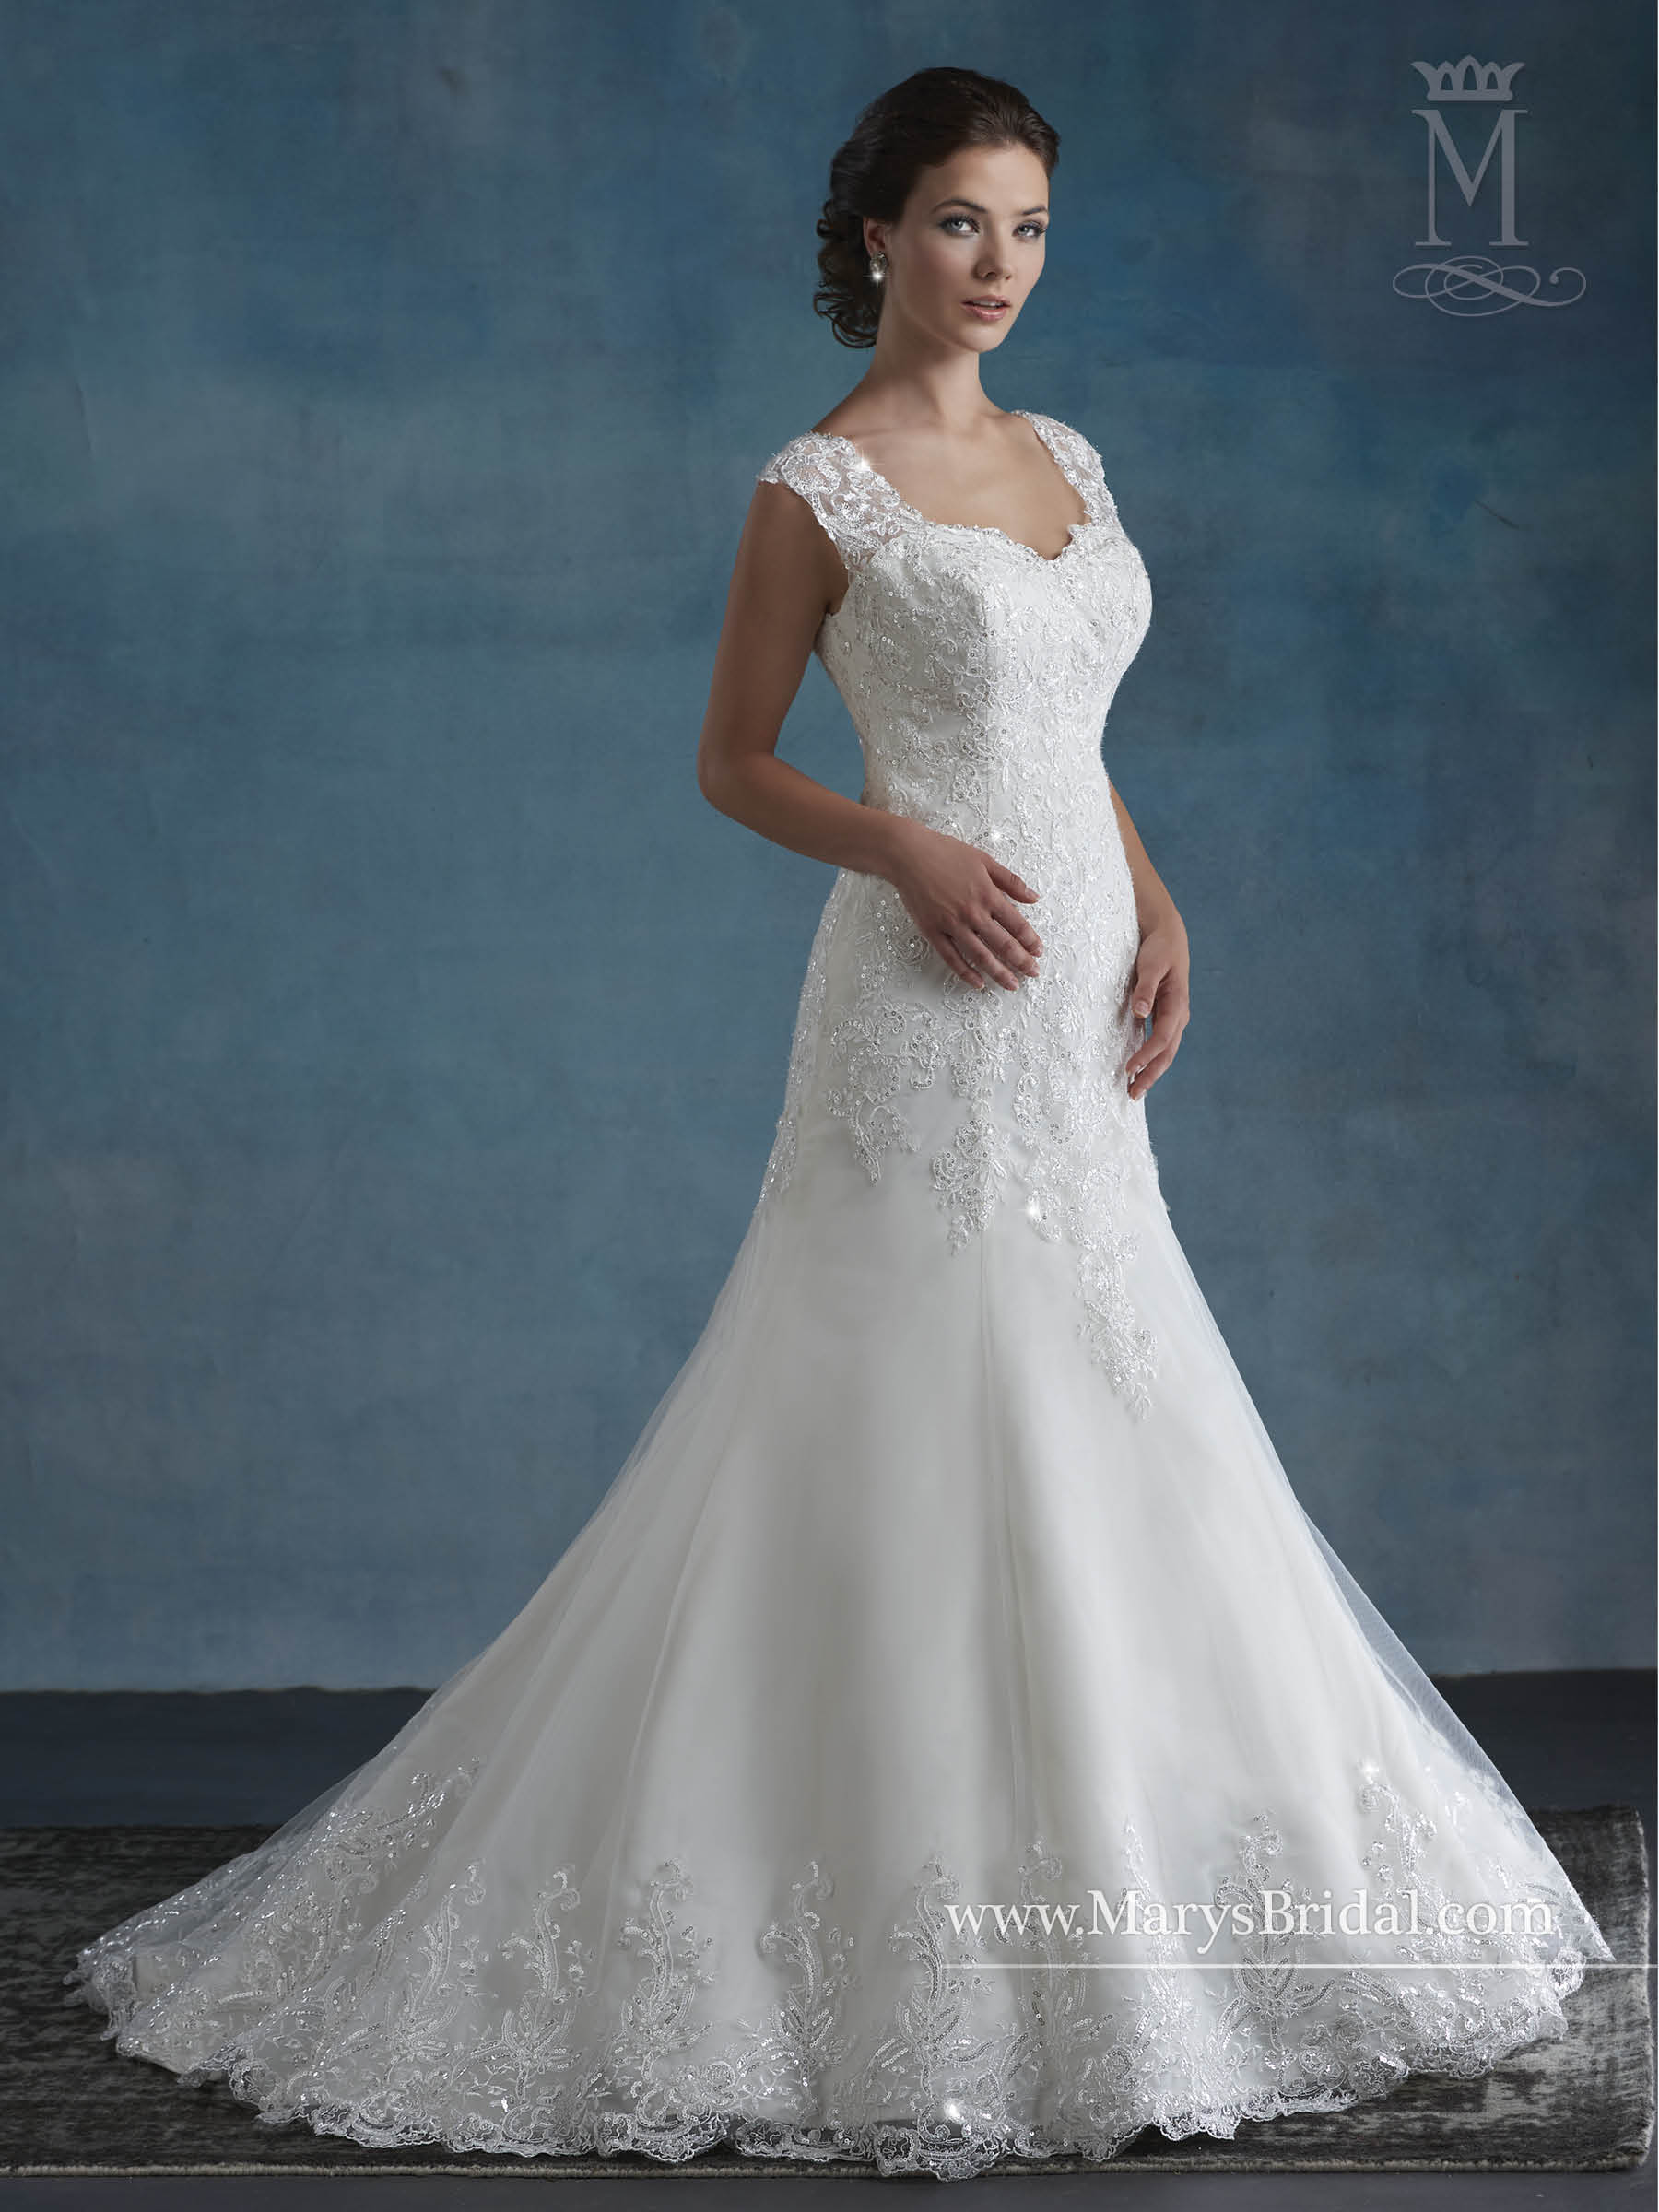 Bridal Wedding Dresses | Style - 6522 in Ivory or White Color